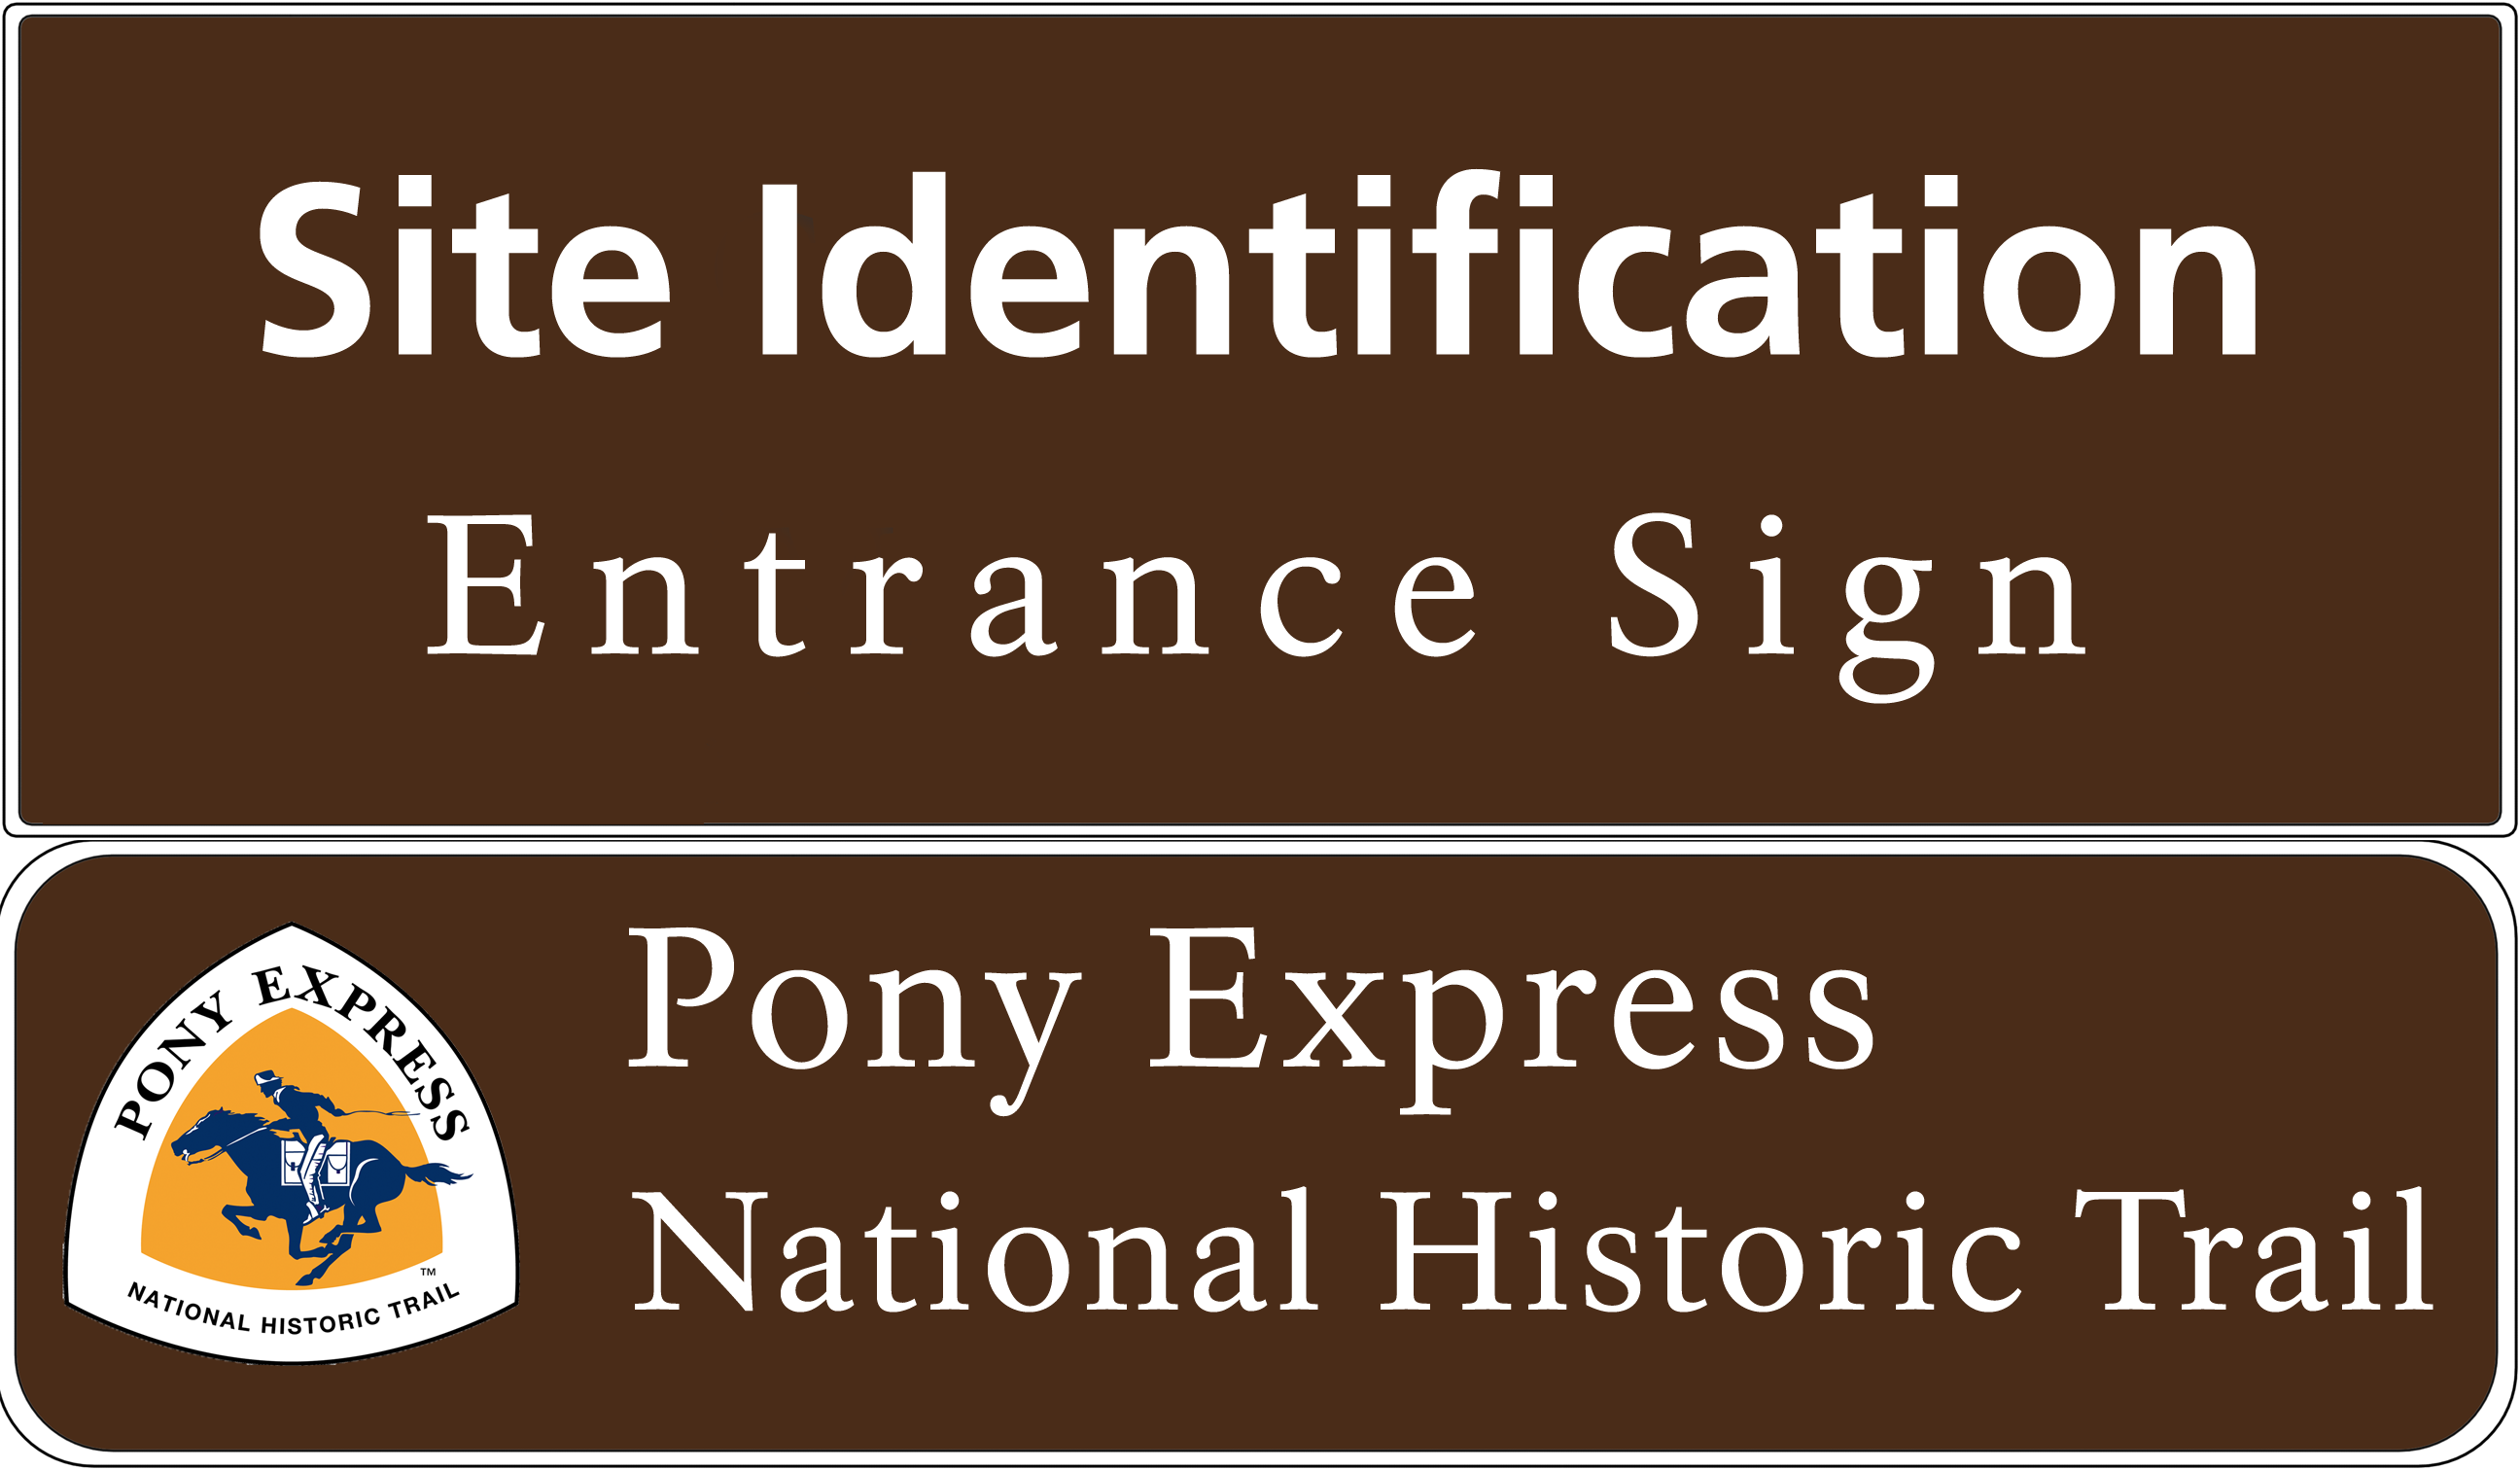 Rectangular brown wide highway sign that says: Site Identification Entrance Sign in white text. A second rectangular sign attached below with orange triangular logo and blue pony rider and white text: Pony Express National Historic Trail